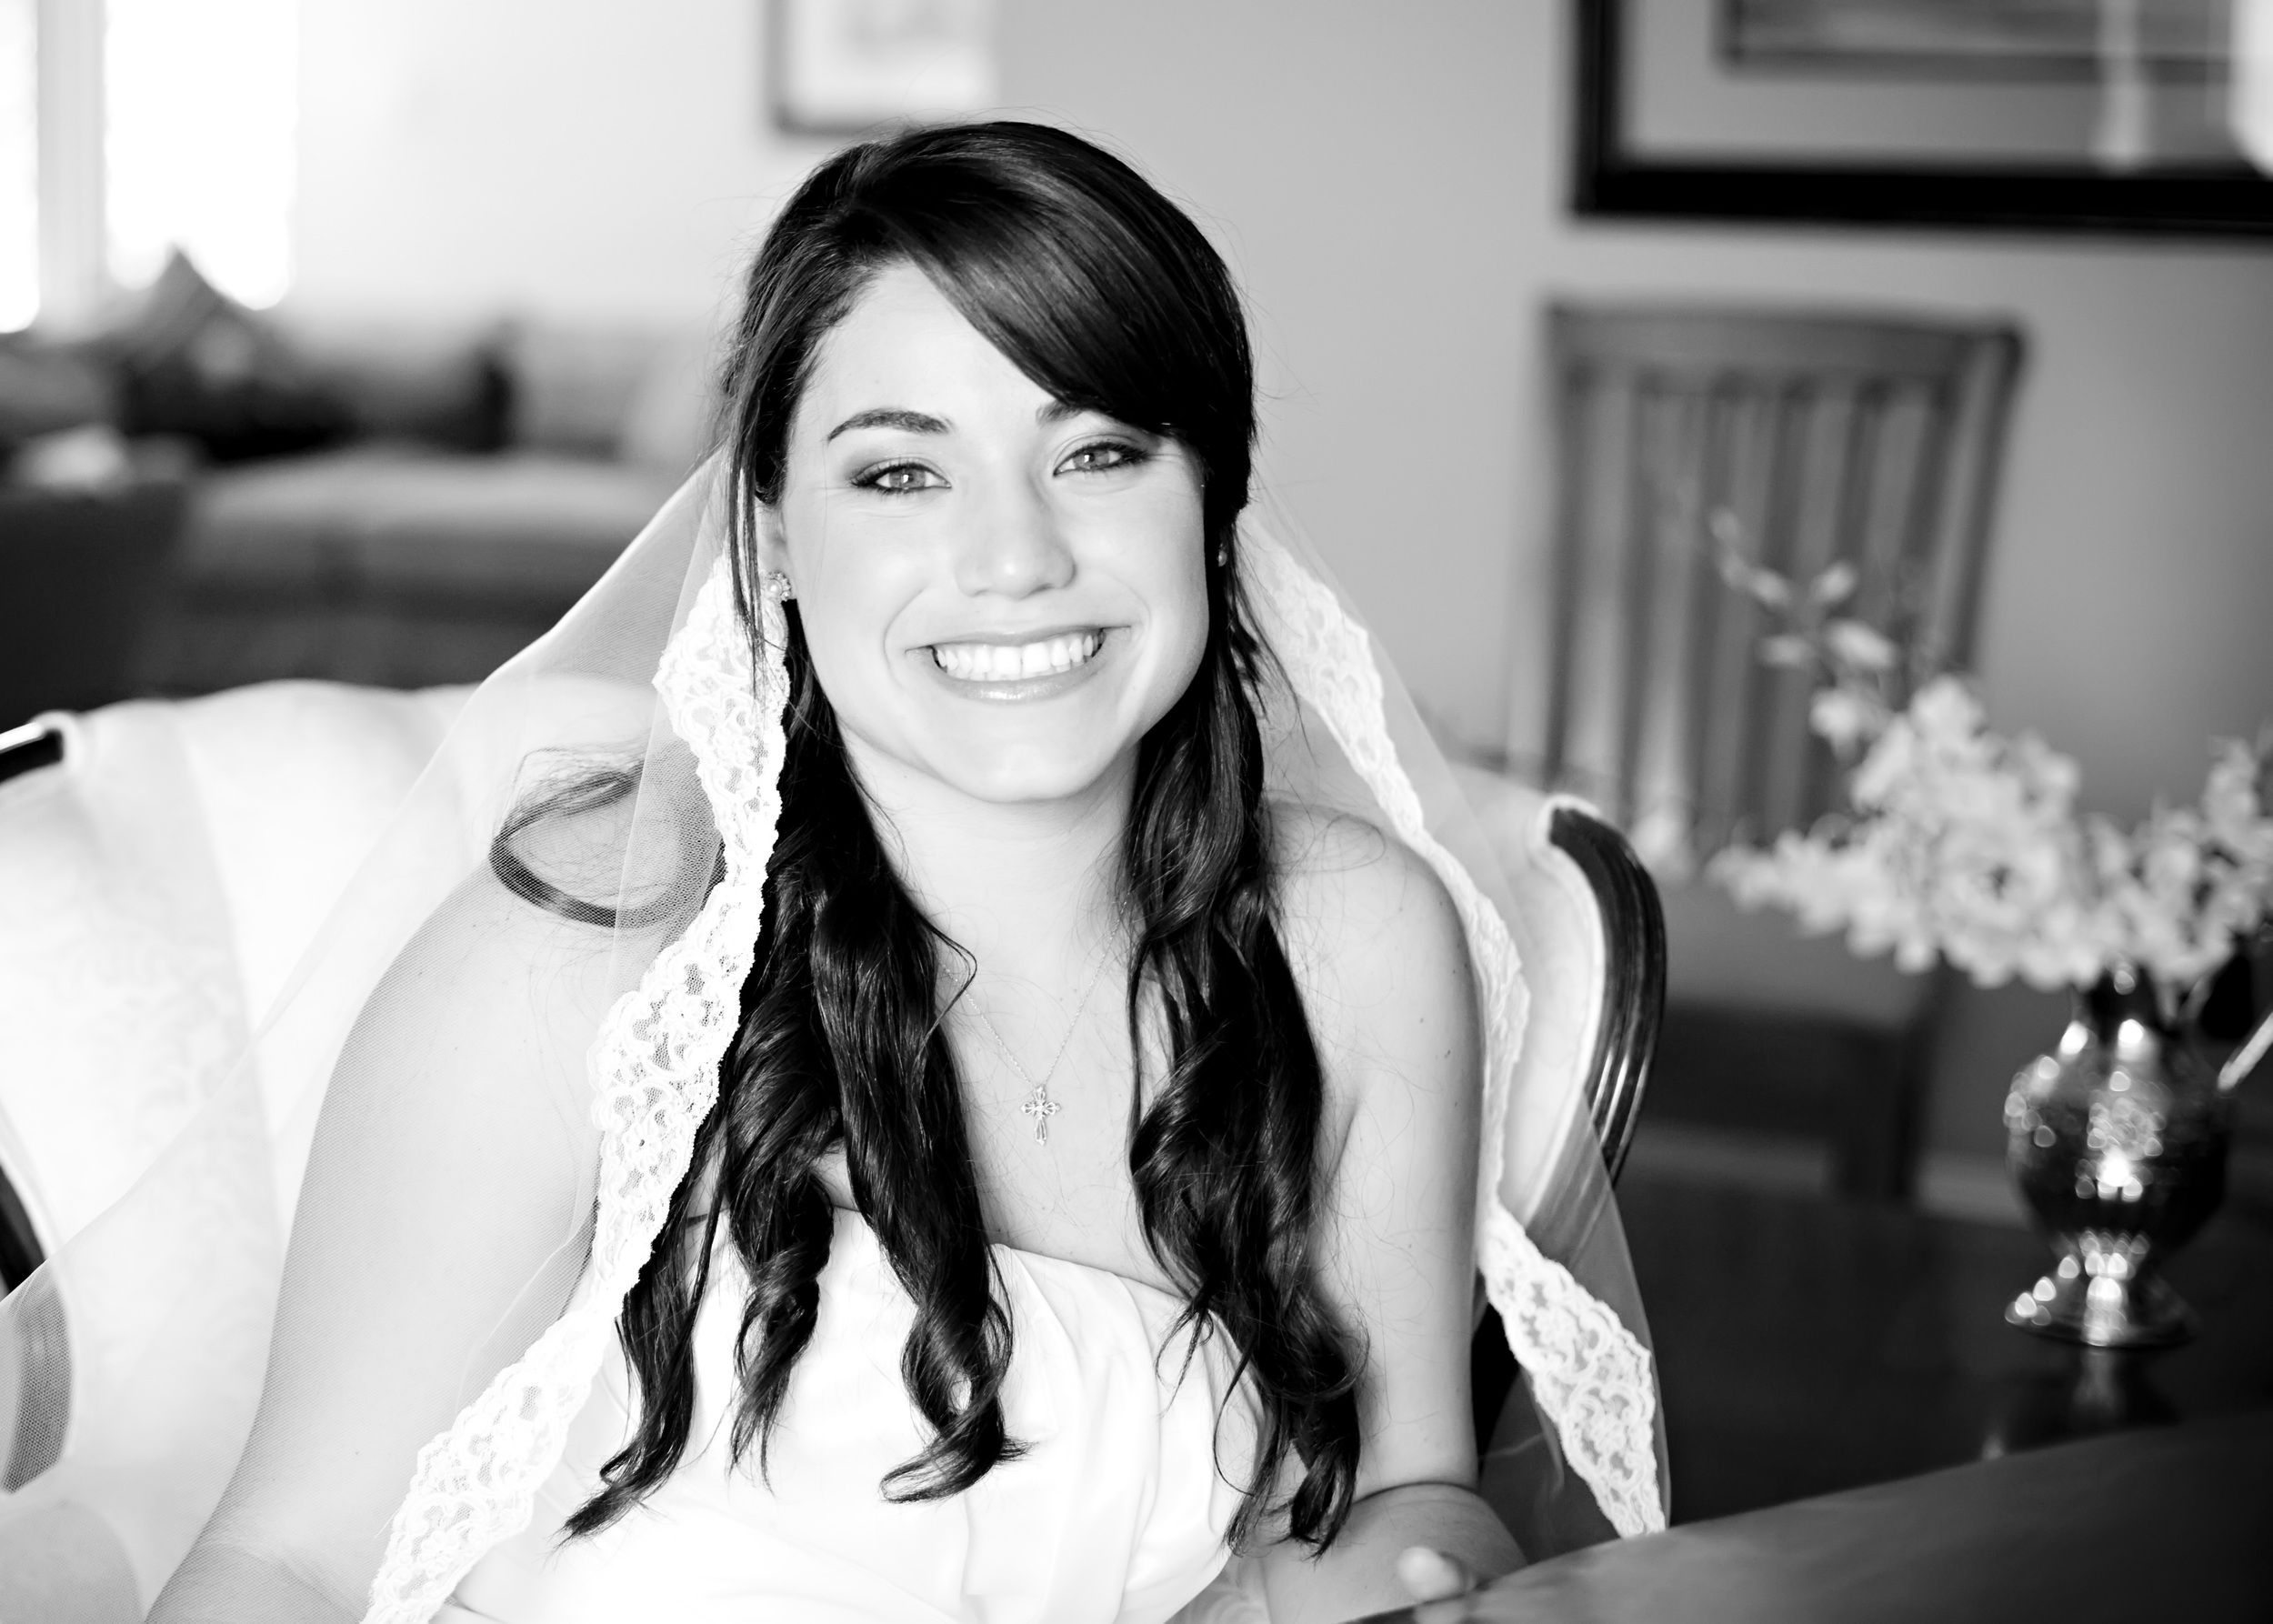 the beautiful bride who received the gift of visiting her ailing Mom on her wedding day.